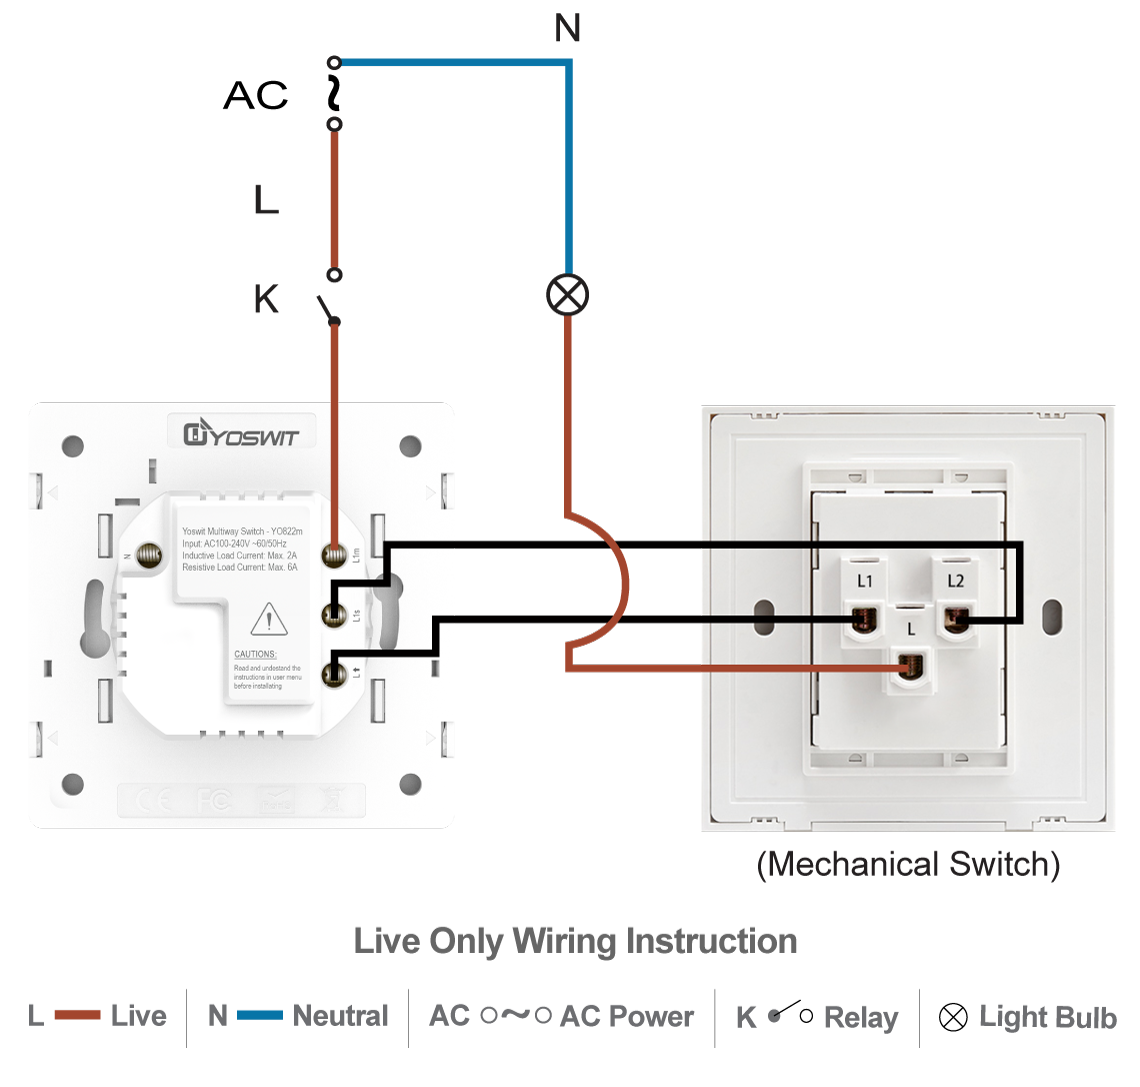 Smart 3 Way Switch Socket 55 1 Gang Home Wiring Three Option Connect Yoswit With Common 2 Wire Without Neutral